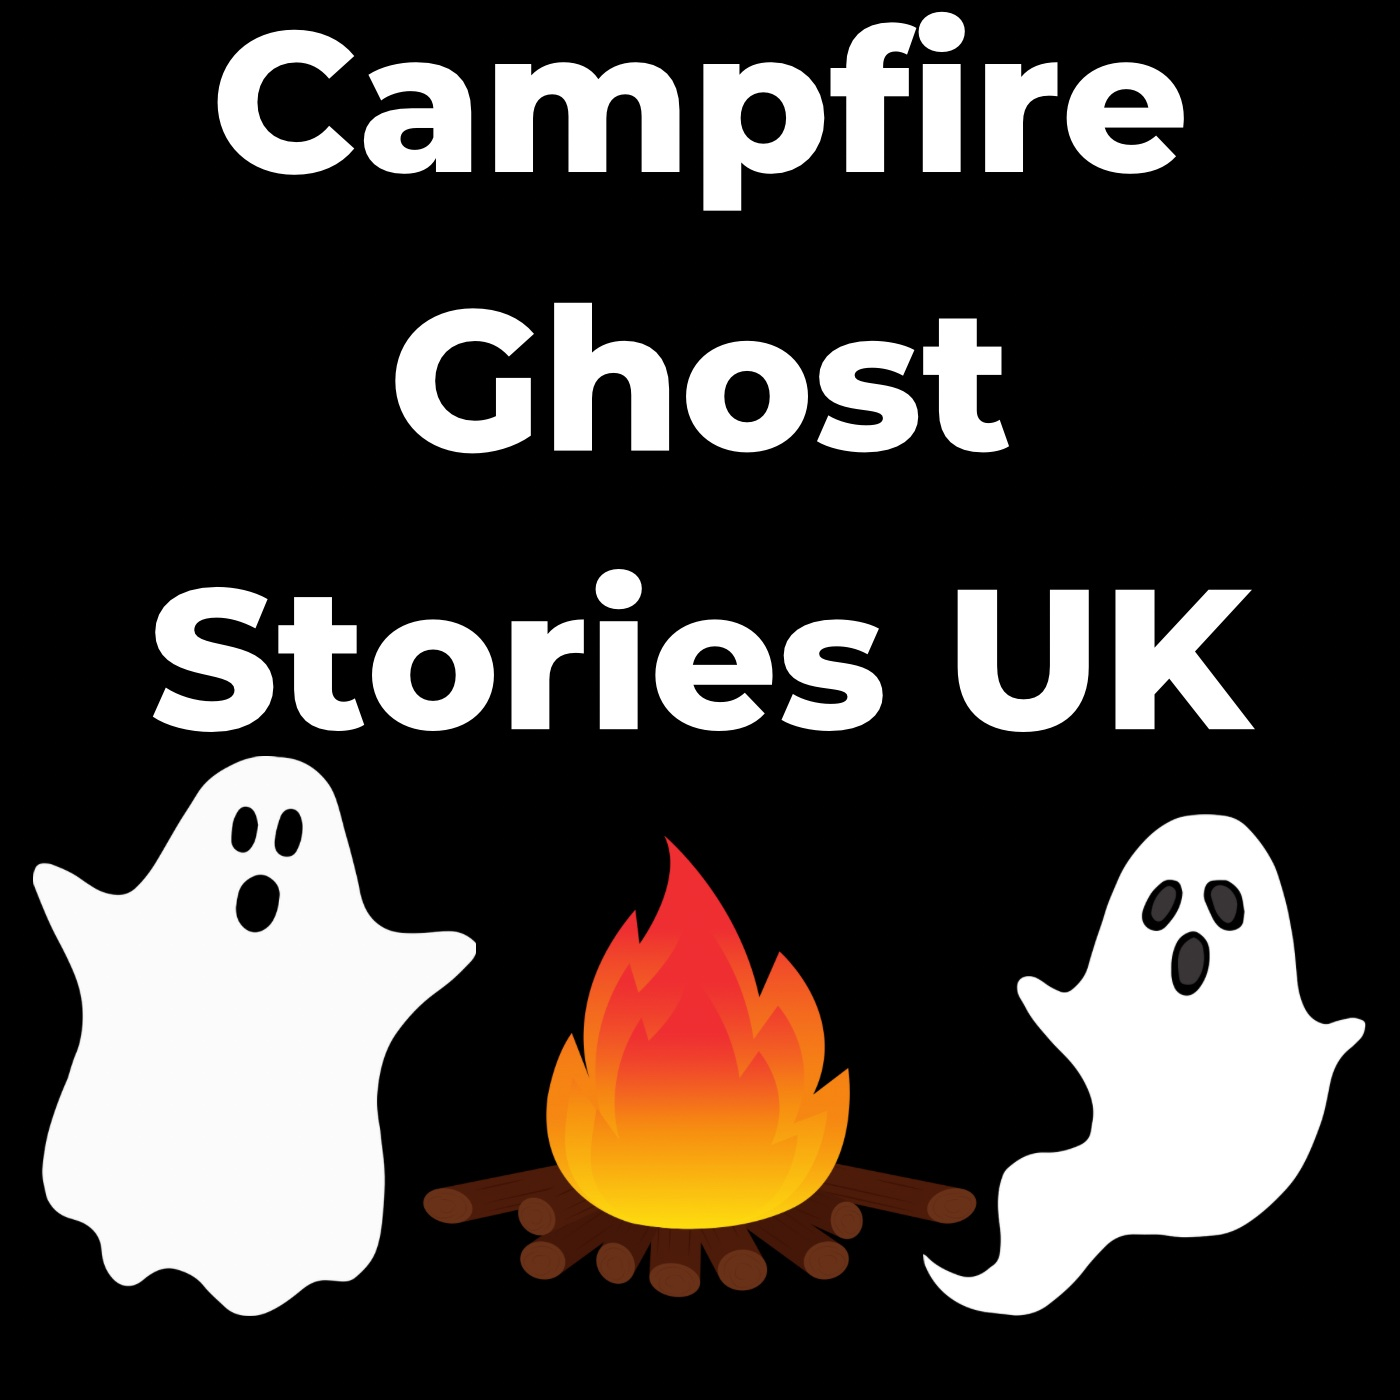 Show artwork for Campfire Ghost Stories UK